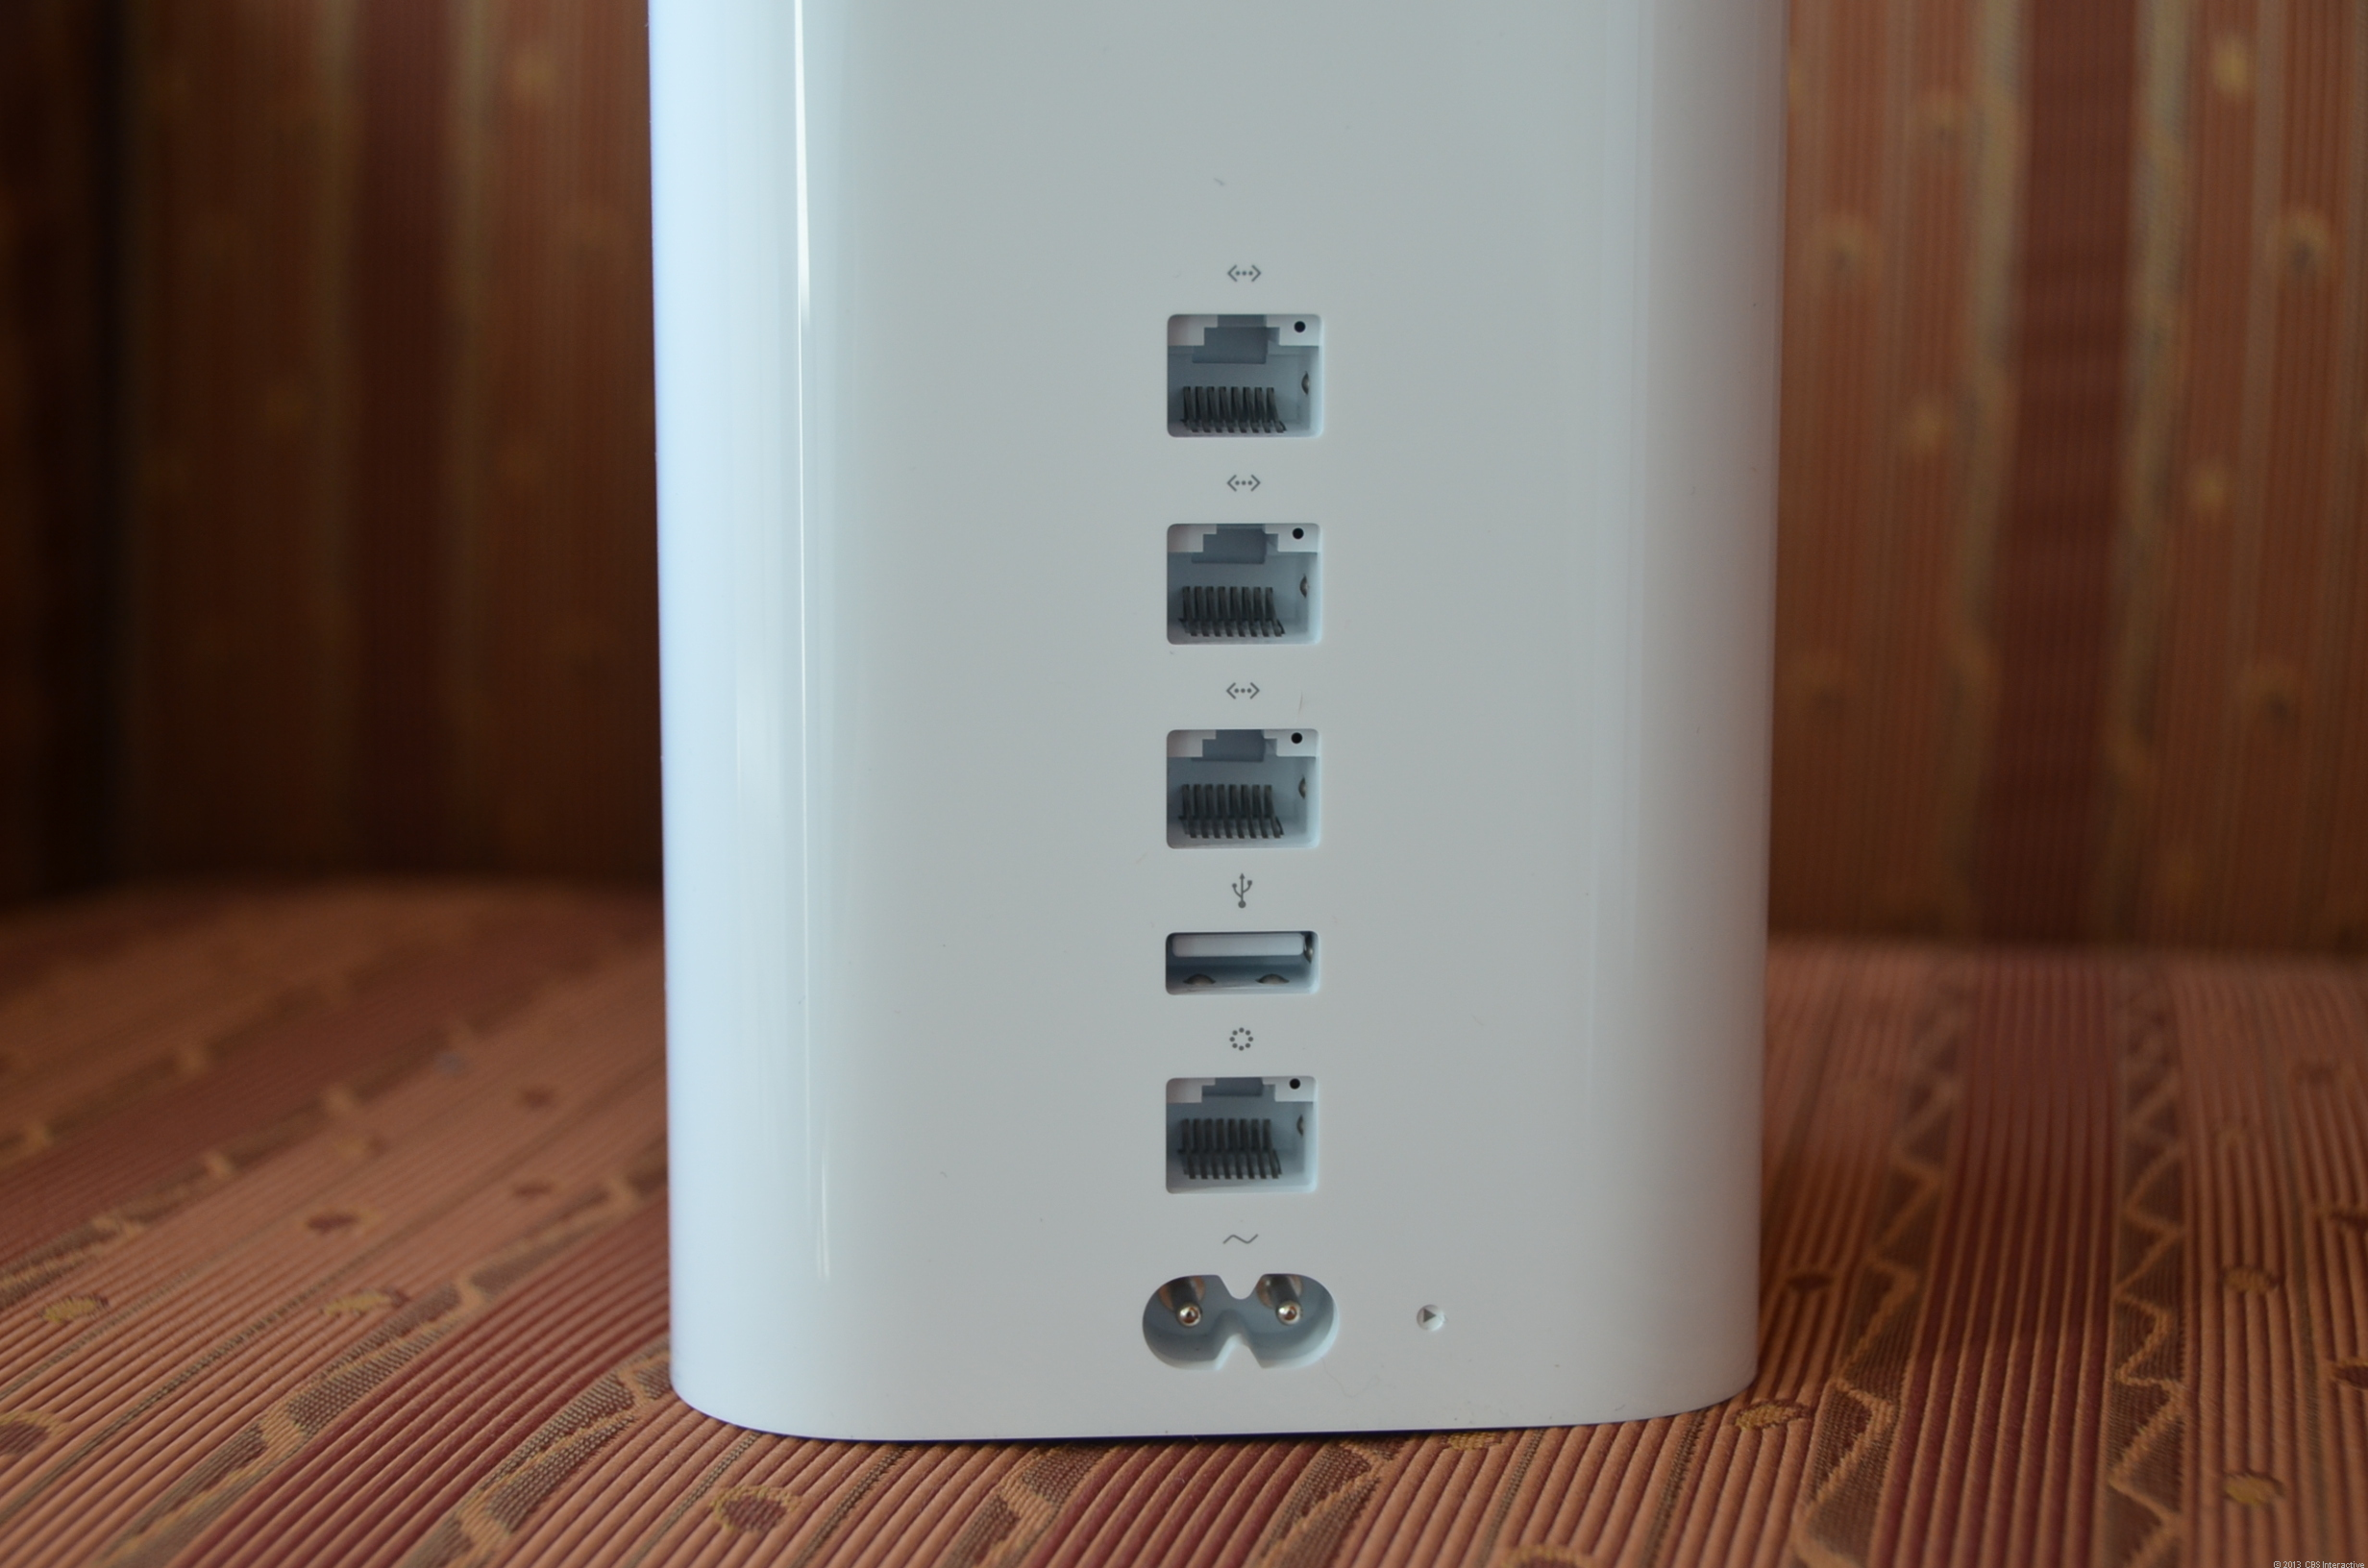 Similar to previous generations, the new Time Capsule has just three LAN ports and supports USB 2.0.